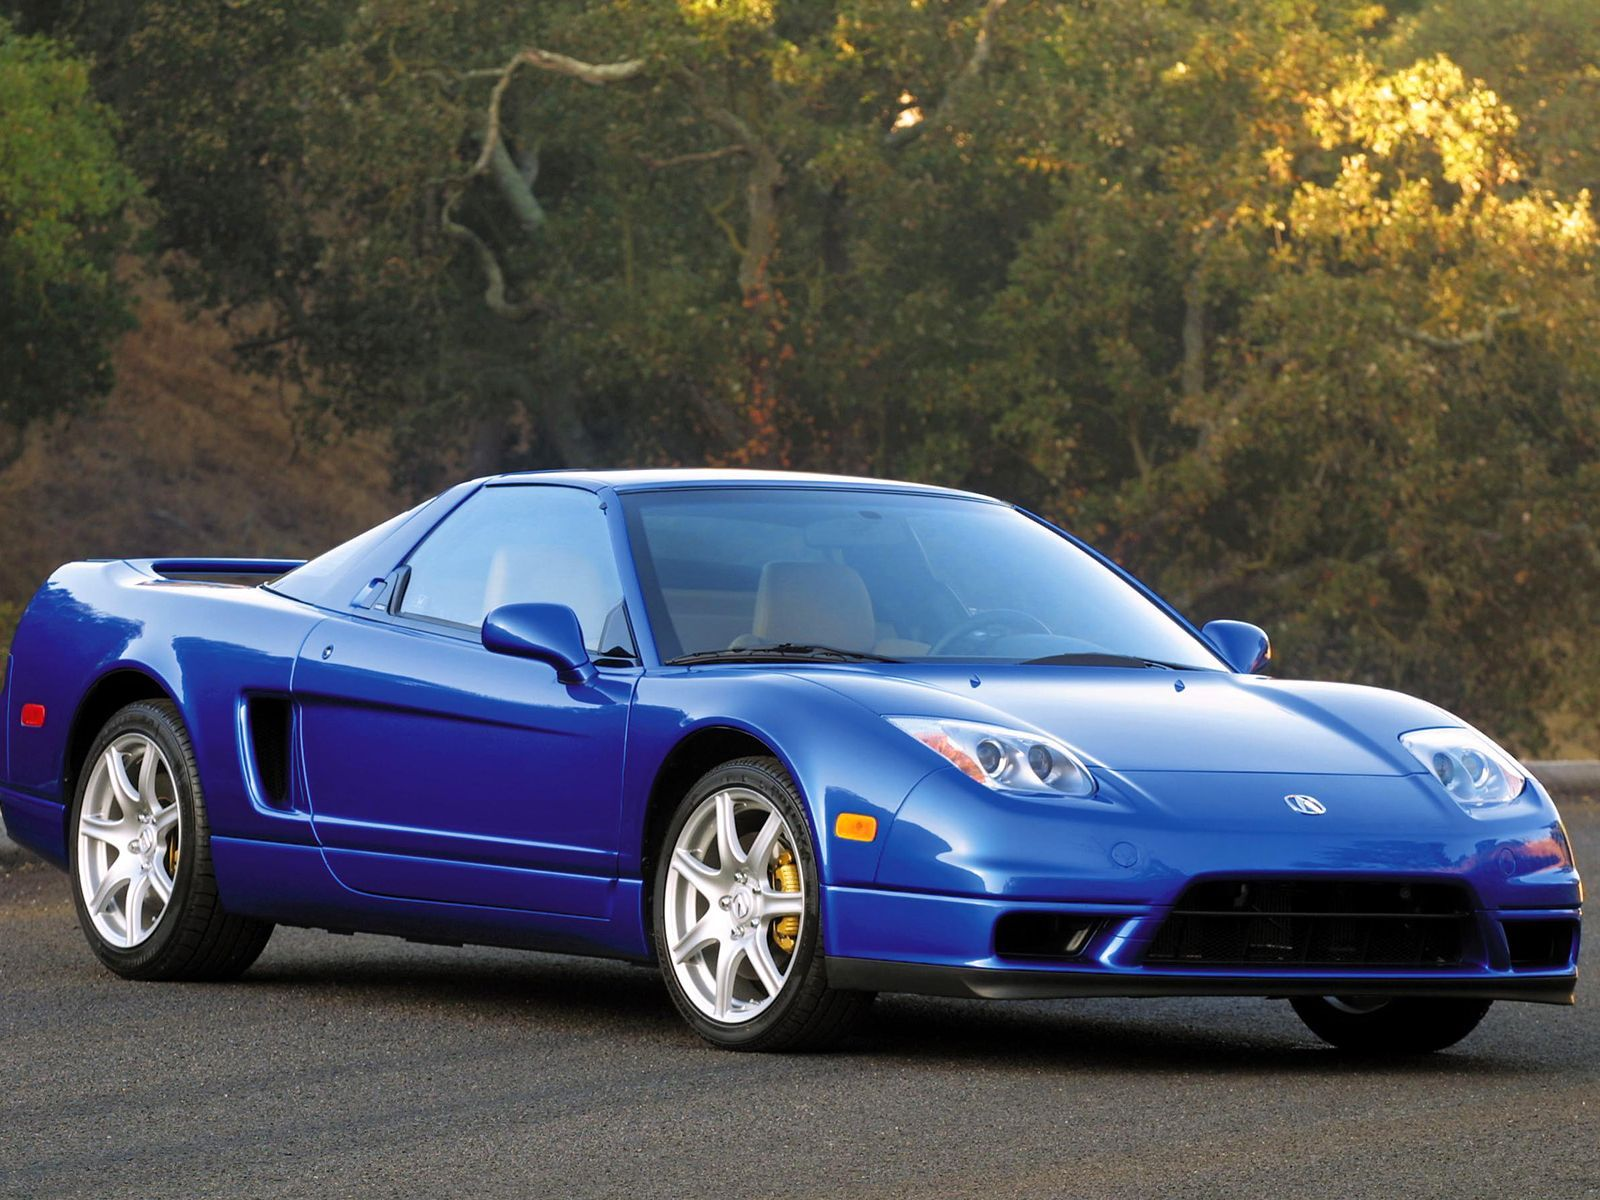 Honda Nsx Honda S Largely Forgotten Sportscar Cars New And Old